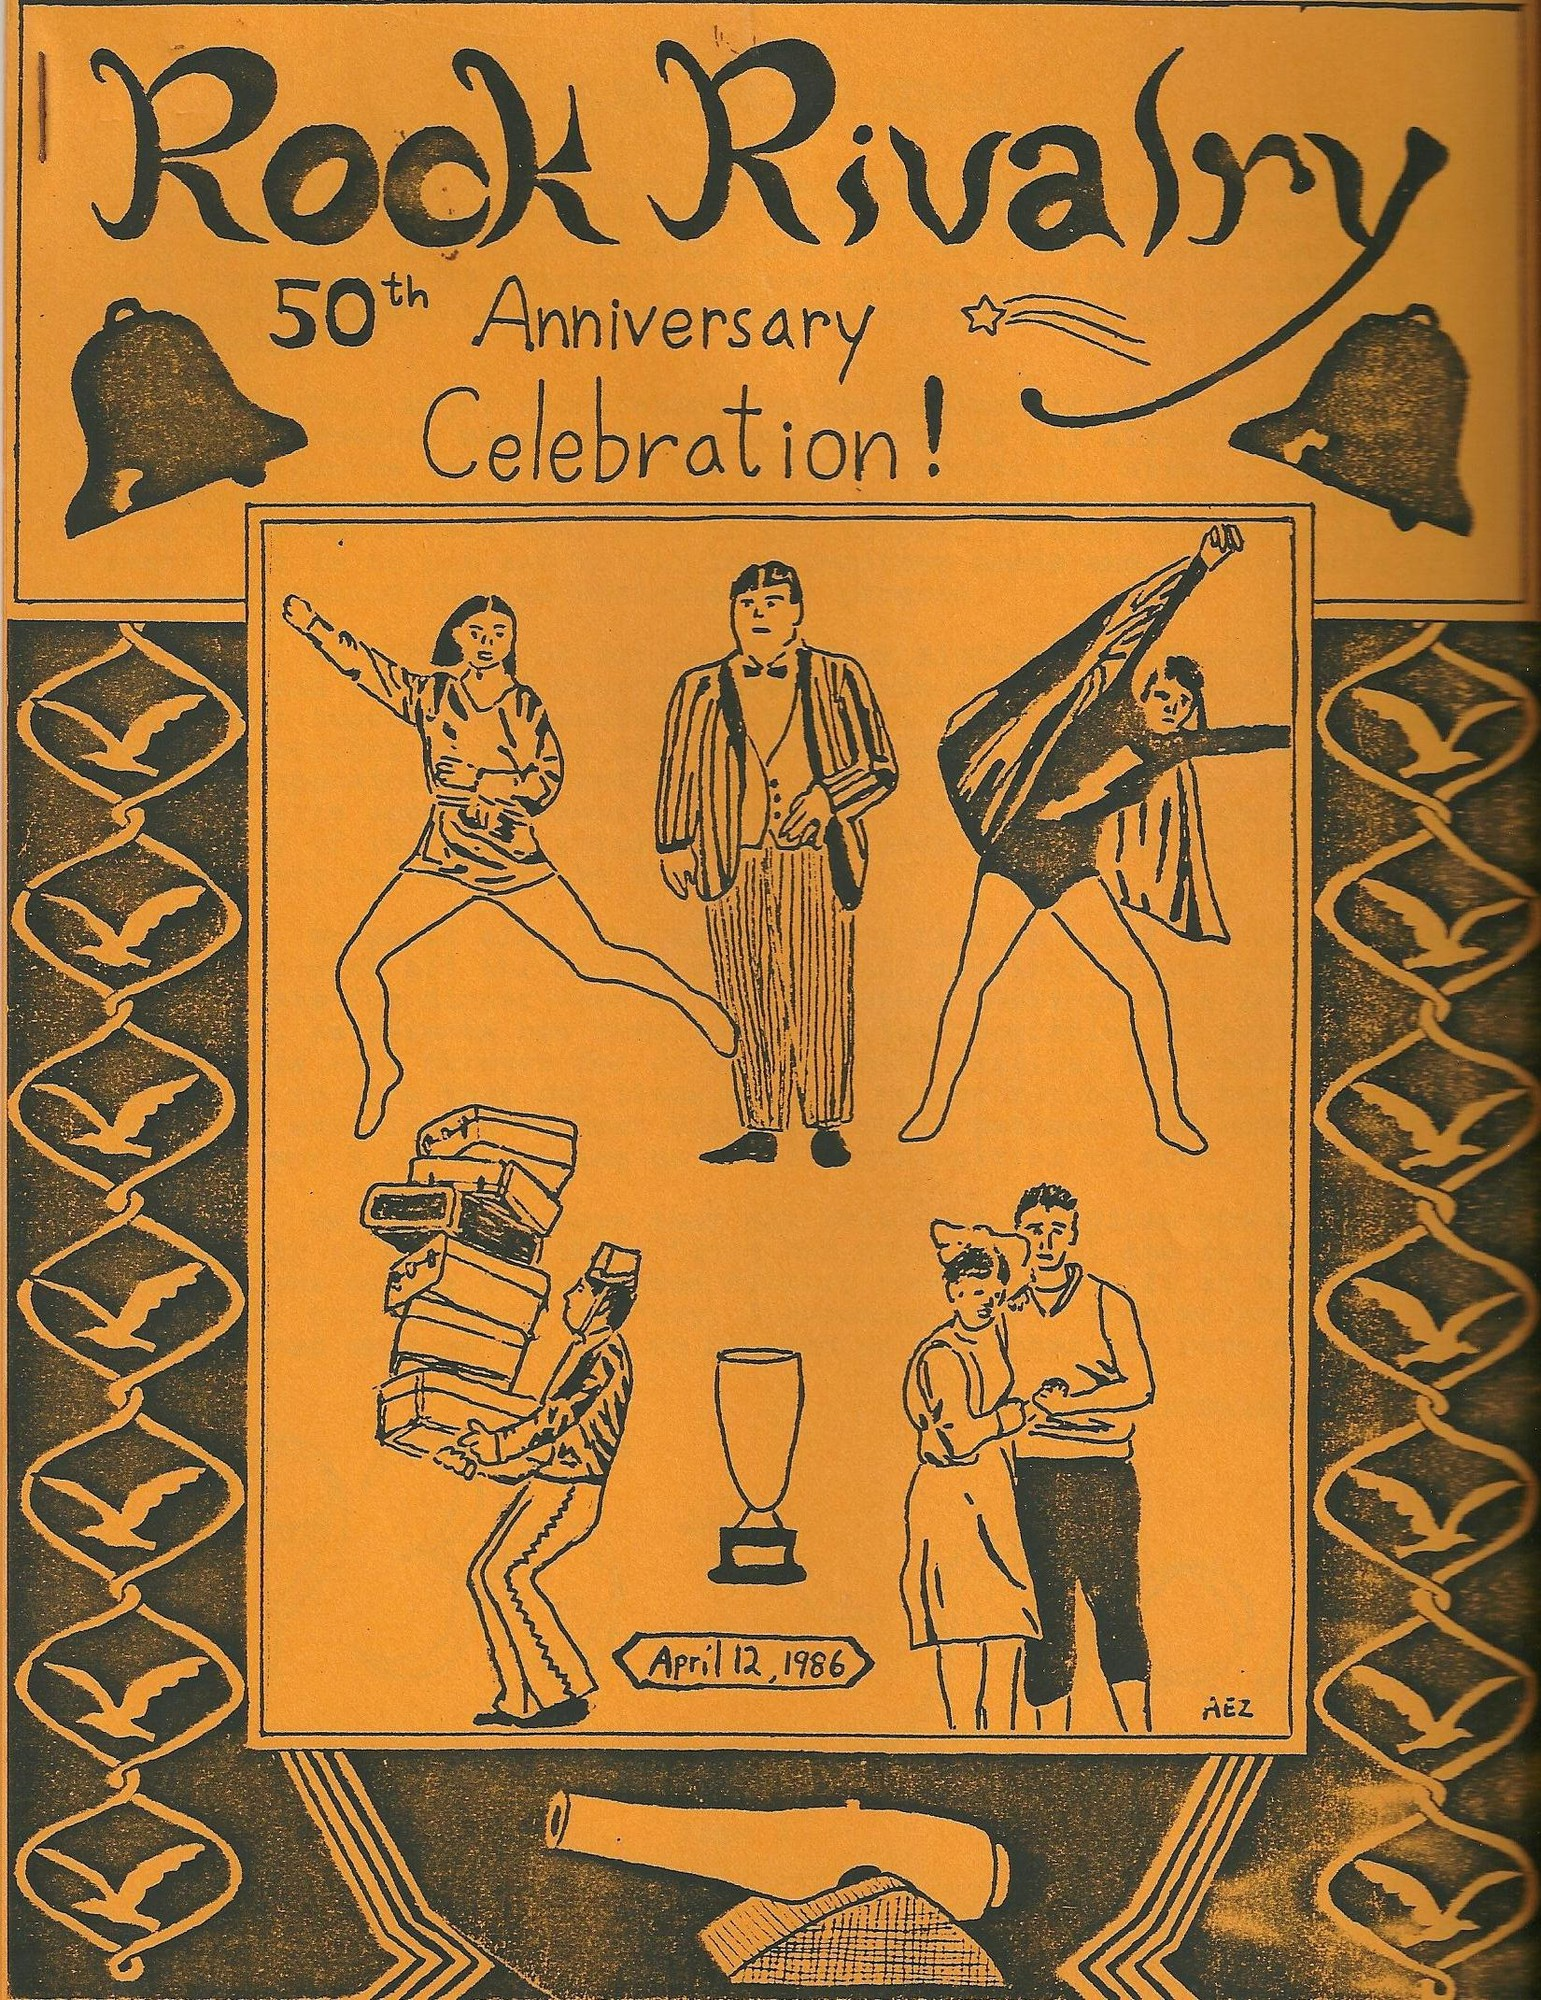 The program for the 50th anniversary celebration of Rock Rivalry.